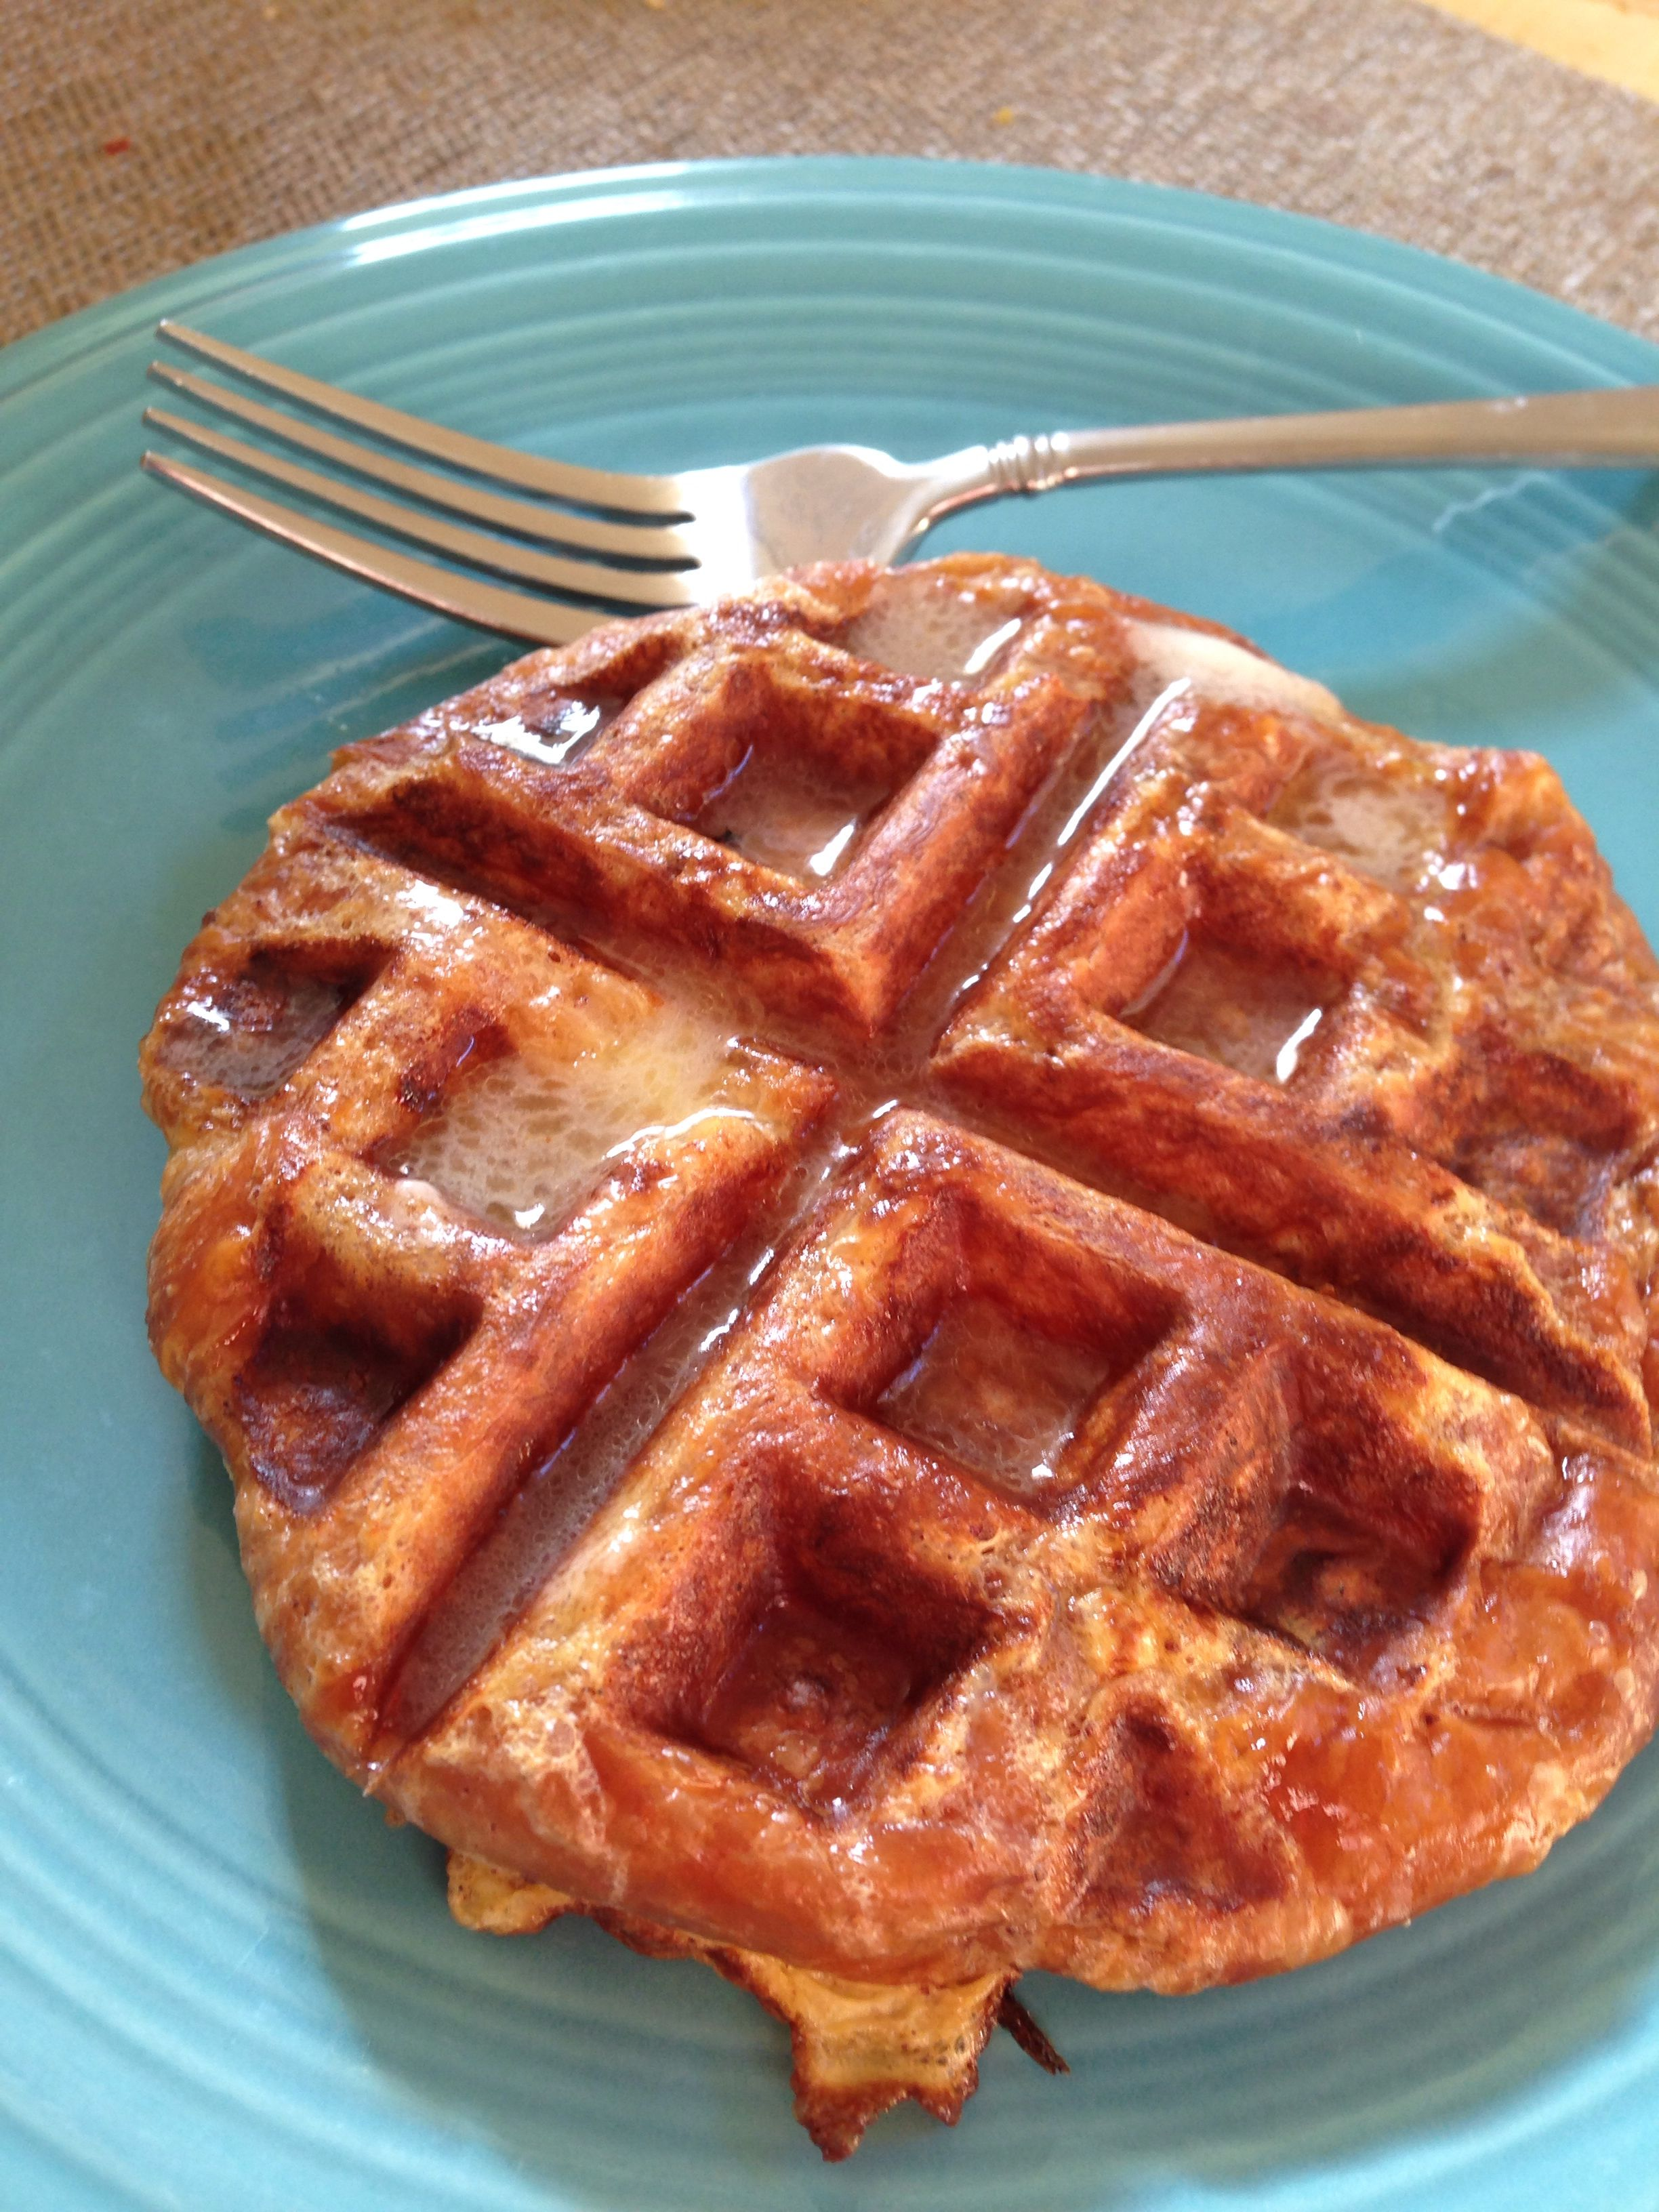 Inspiration from rachael ray waffle french toast